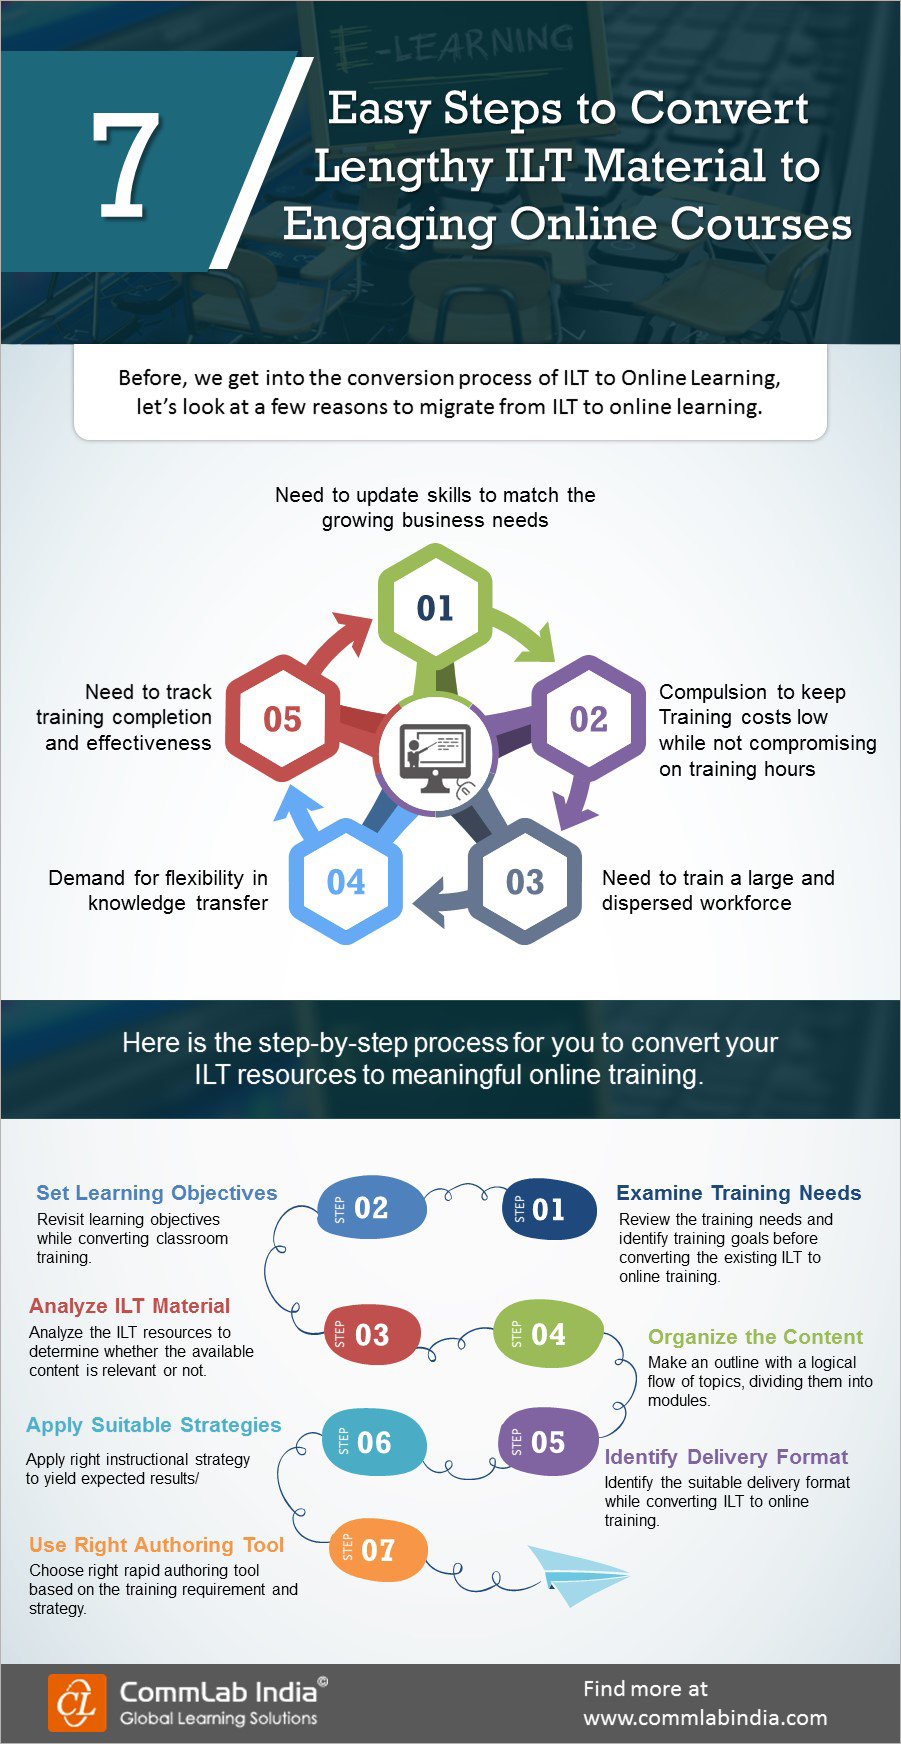 7 Easy Steps to Convert Lengthy ILT Material to Engaging Online Course [Infographic]